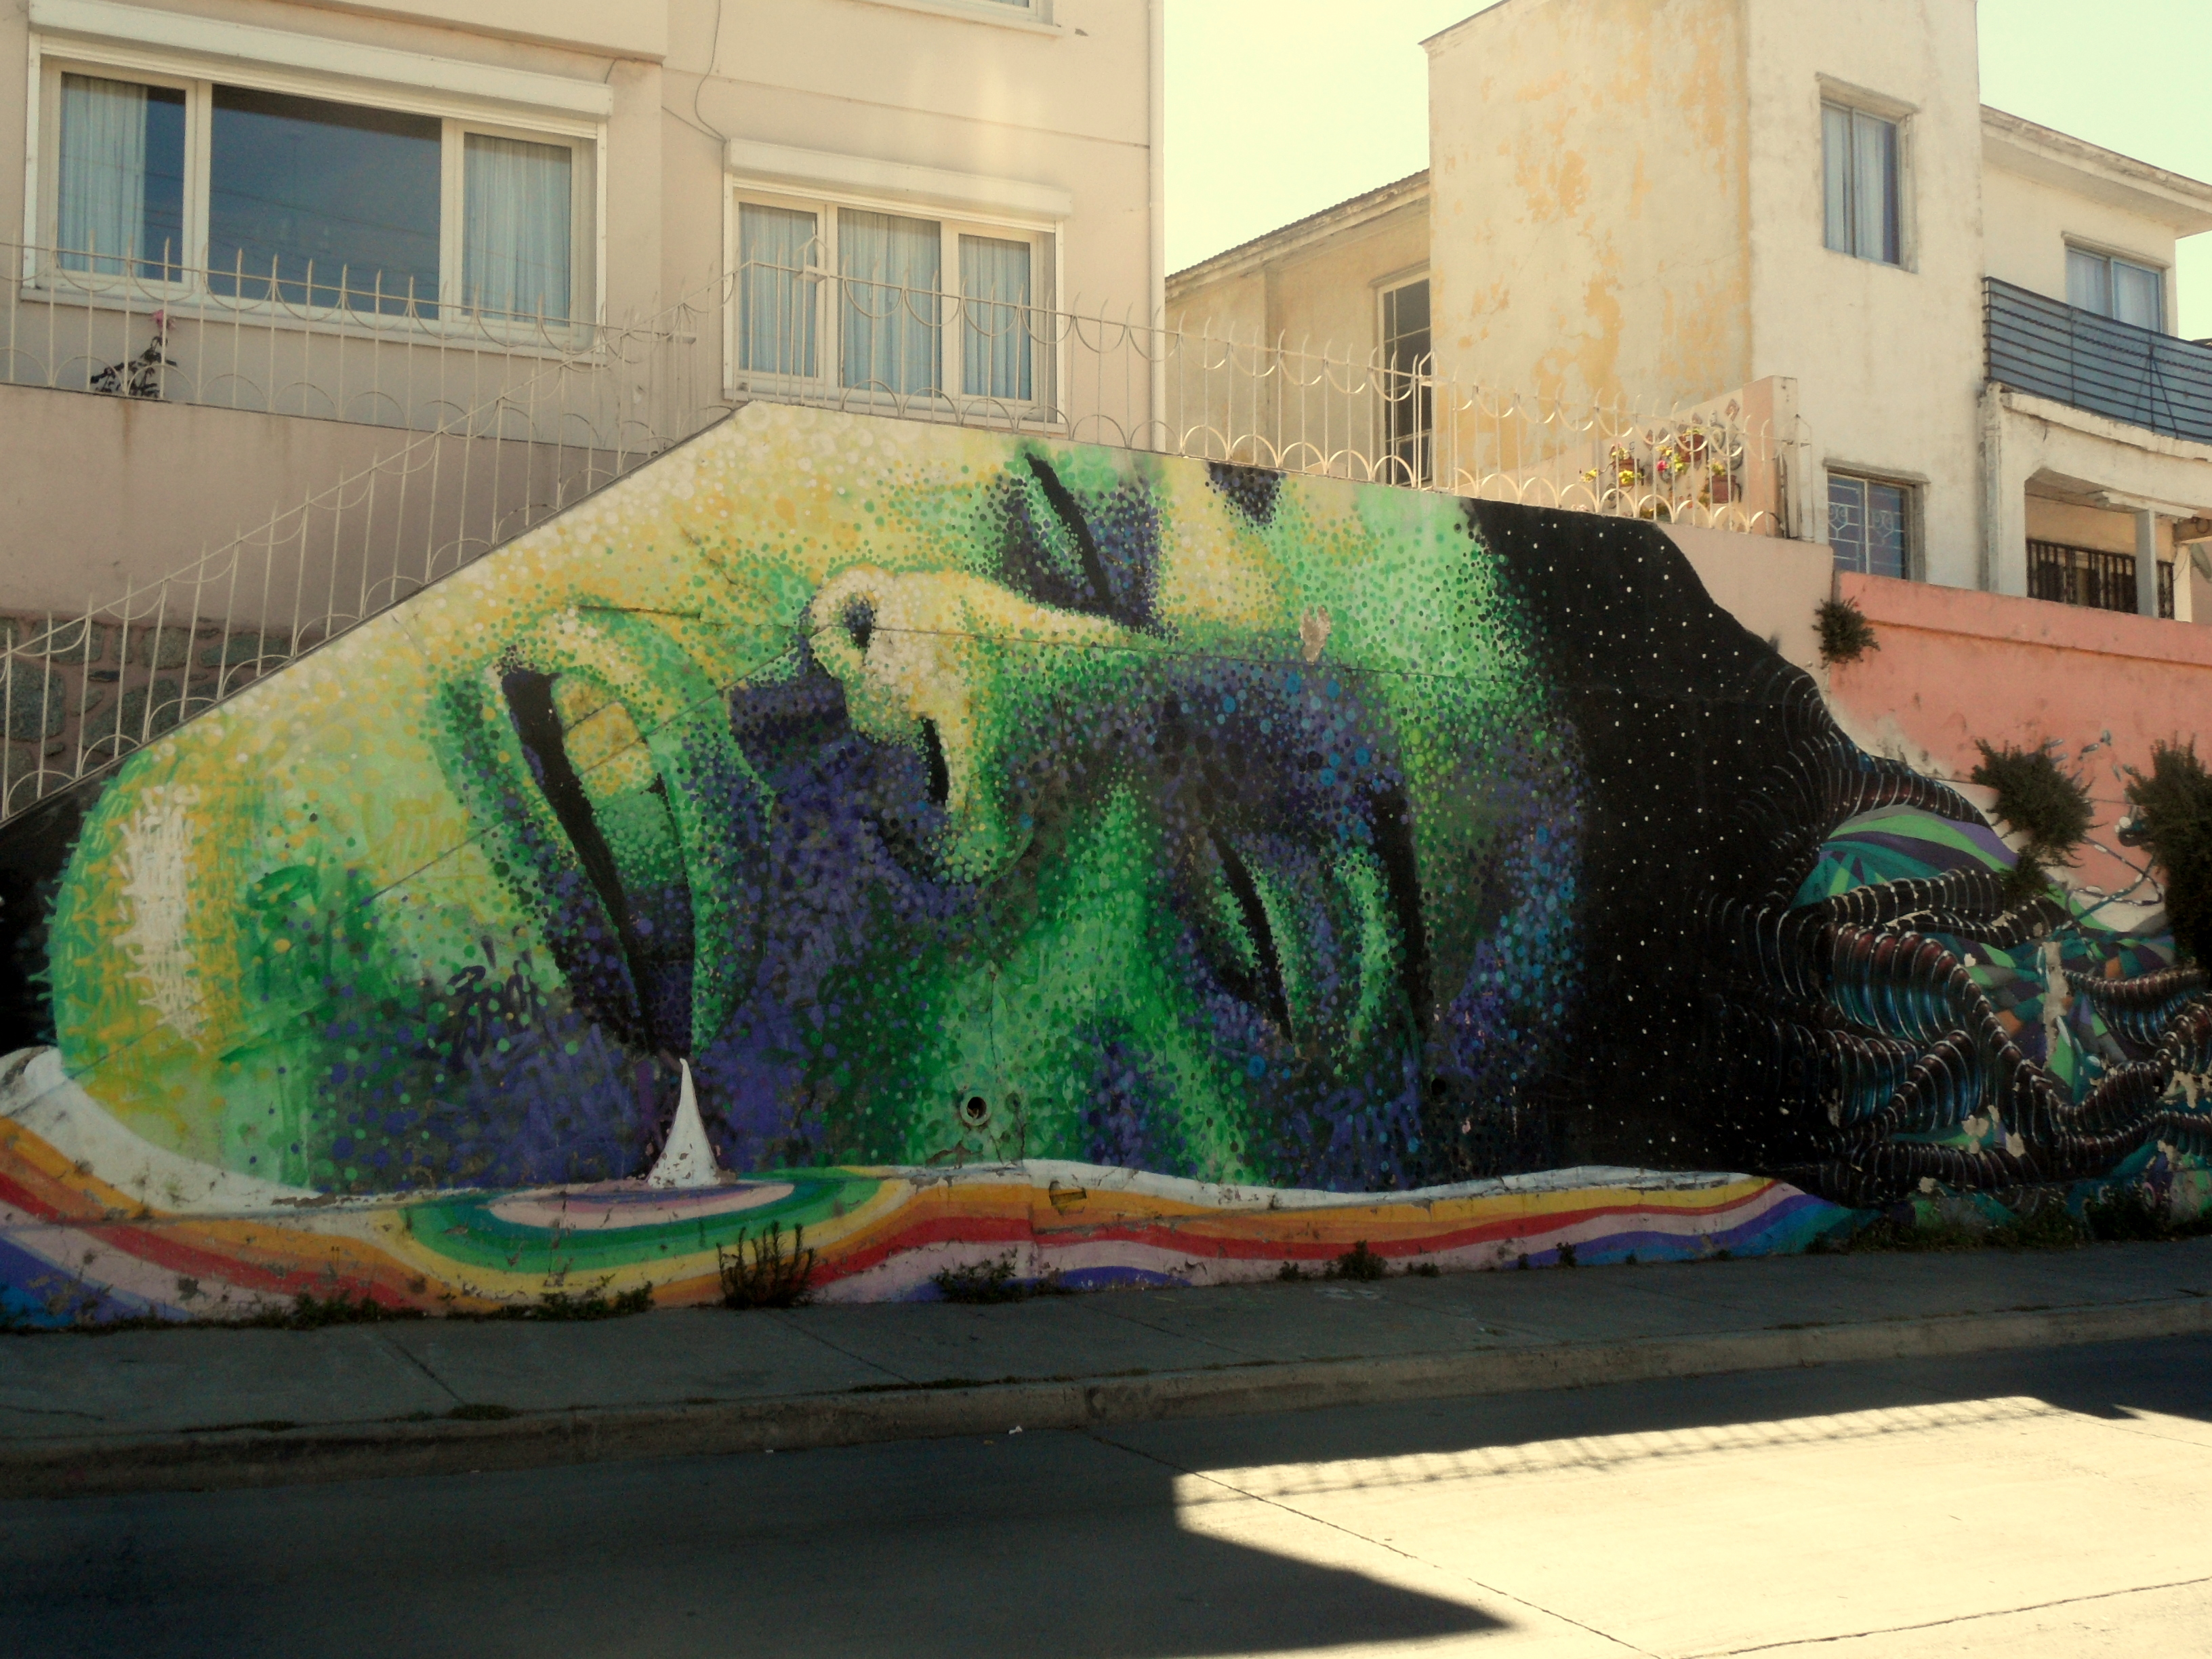 Arte Callejero Valparaiso Mural By Dasic Okuda In Valparaiso Chile Art Ring